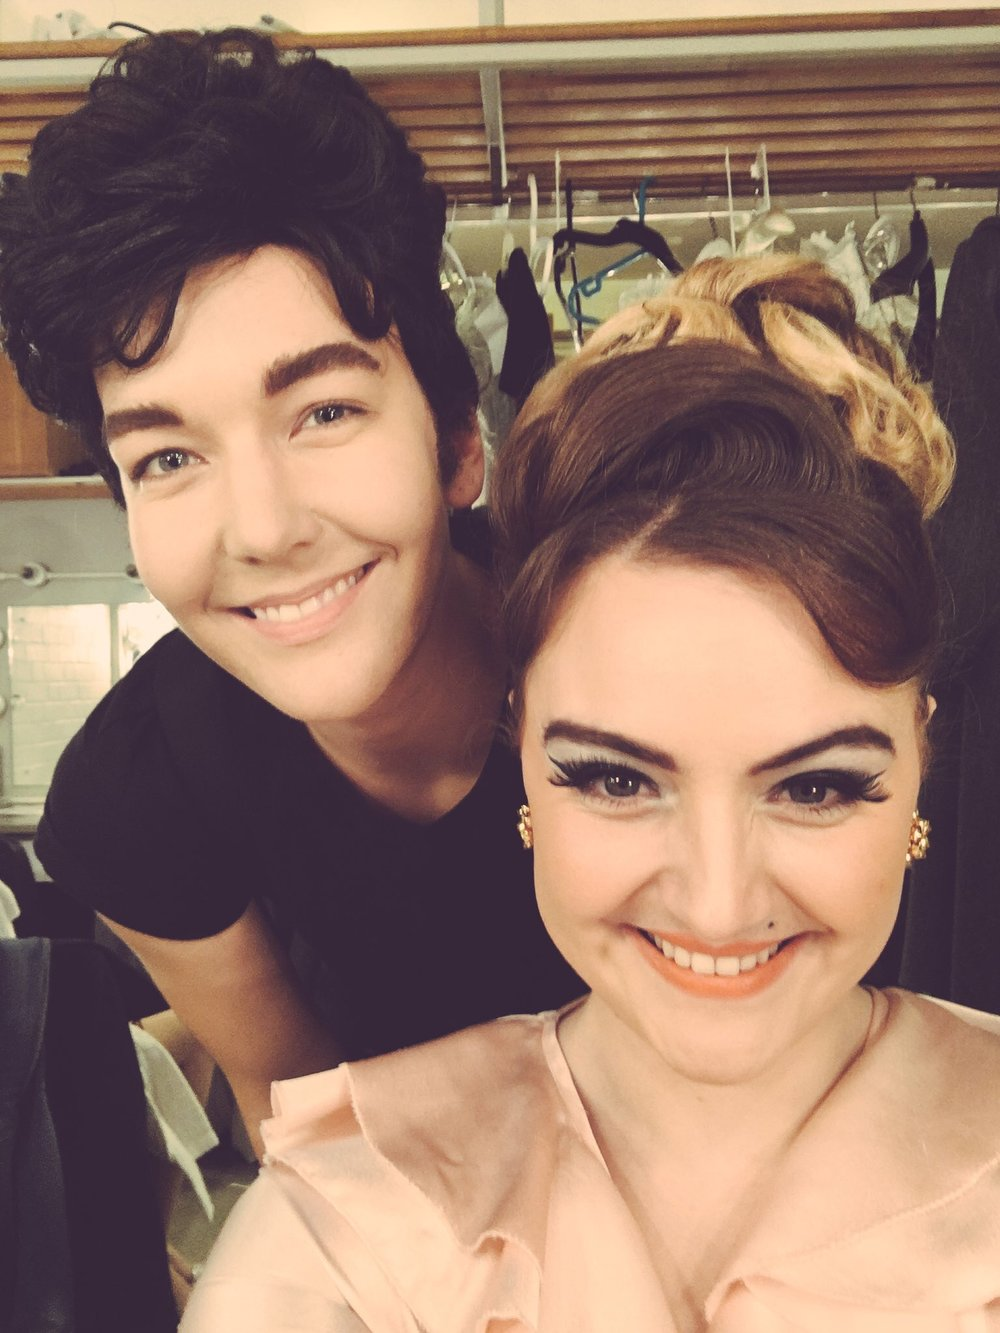 Faramondo (Ida Ränzlöv) & Rosimonda (Beth Moxon) Backstage Photo